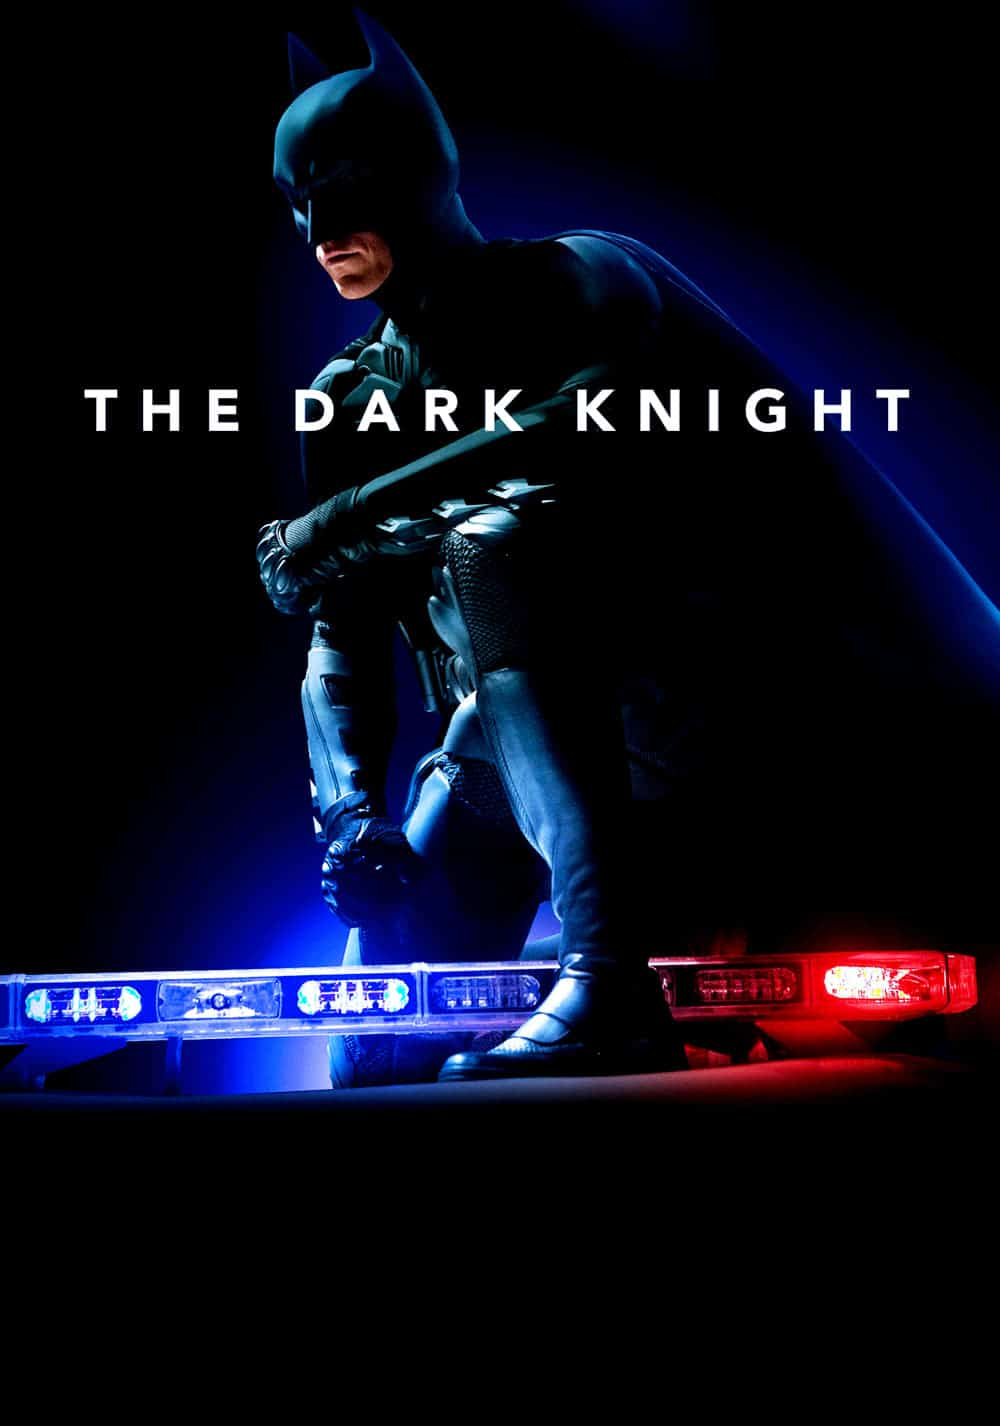 the dark knight poster high quality HD printable wallpapers 2008 batman on police car